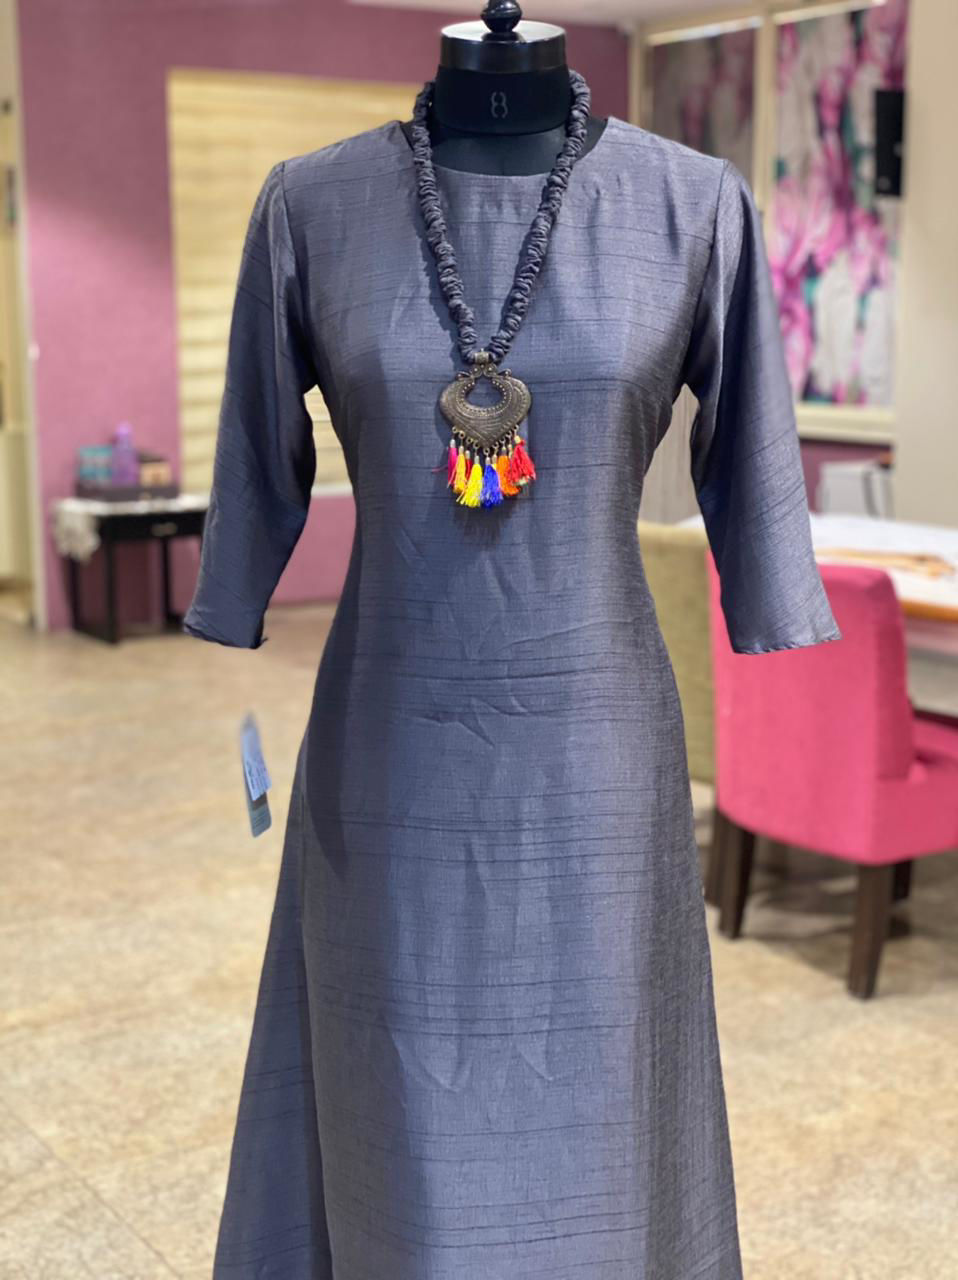 Picture of Plain Silk Long Tunic With Stylish Neckpiece - Deep Blue